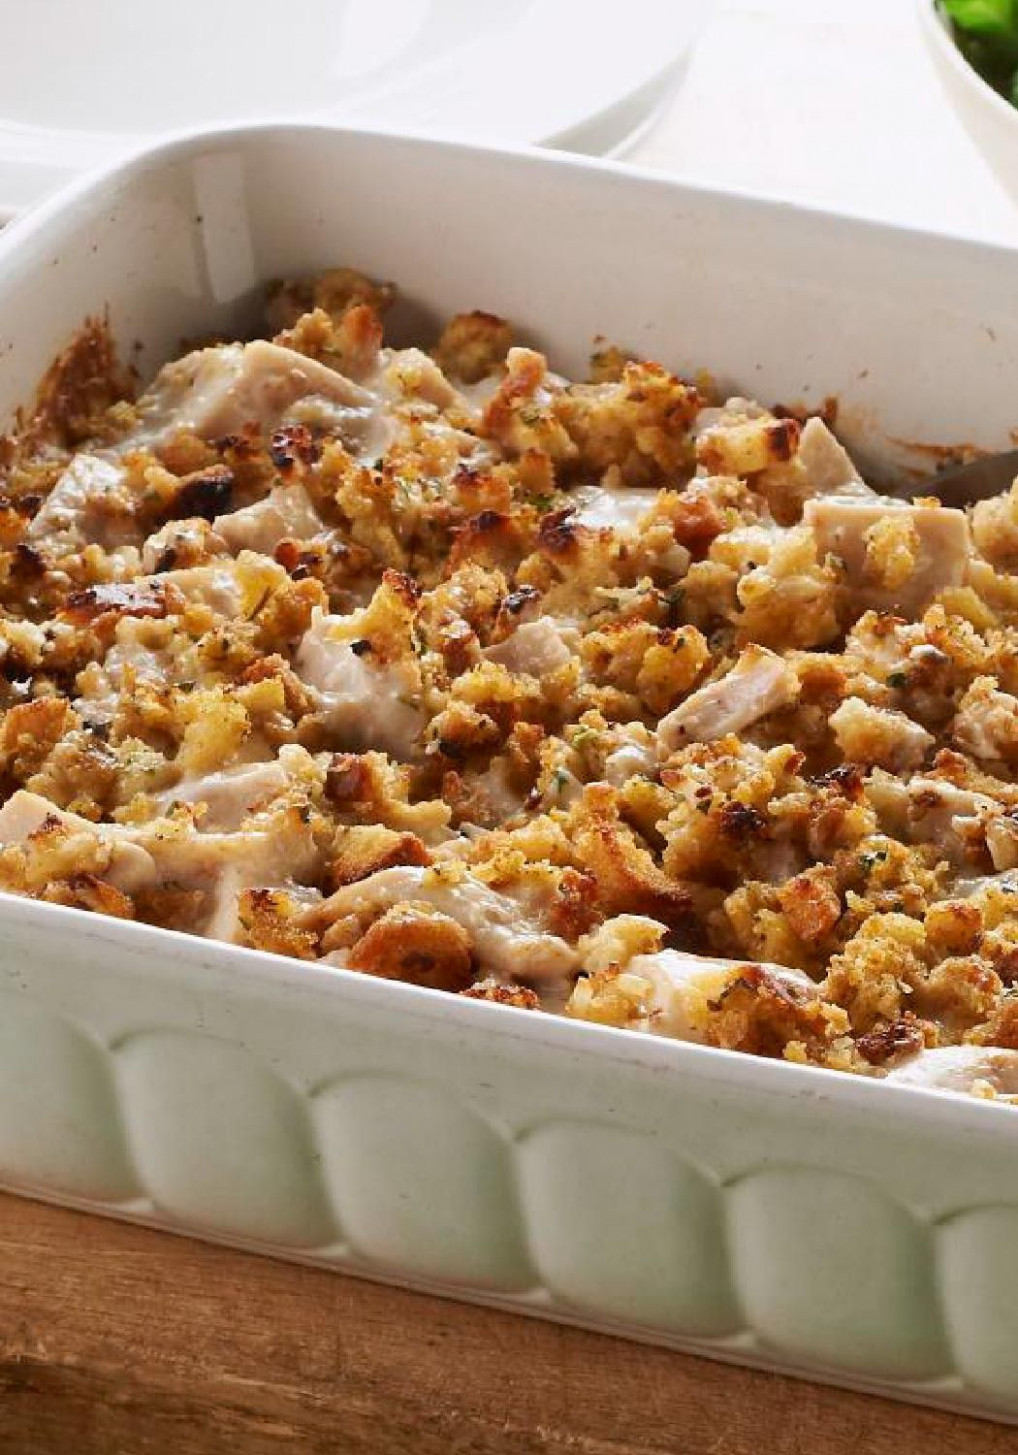 STOVE TOP One-Dish Chicken Bake - stove top recipes chicken